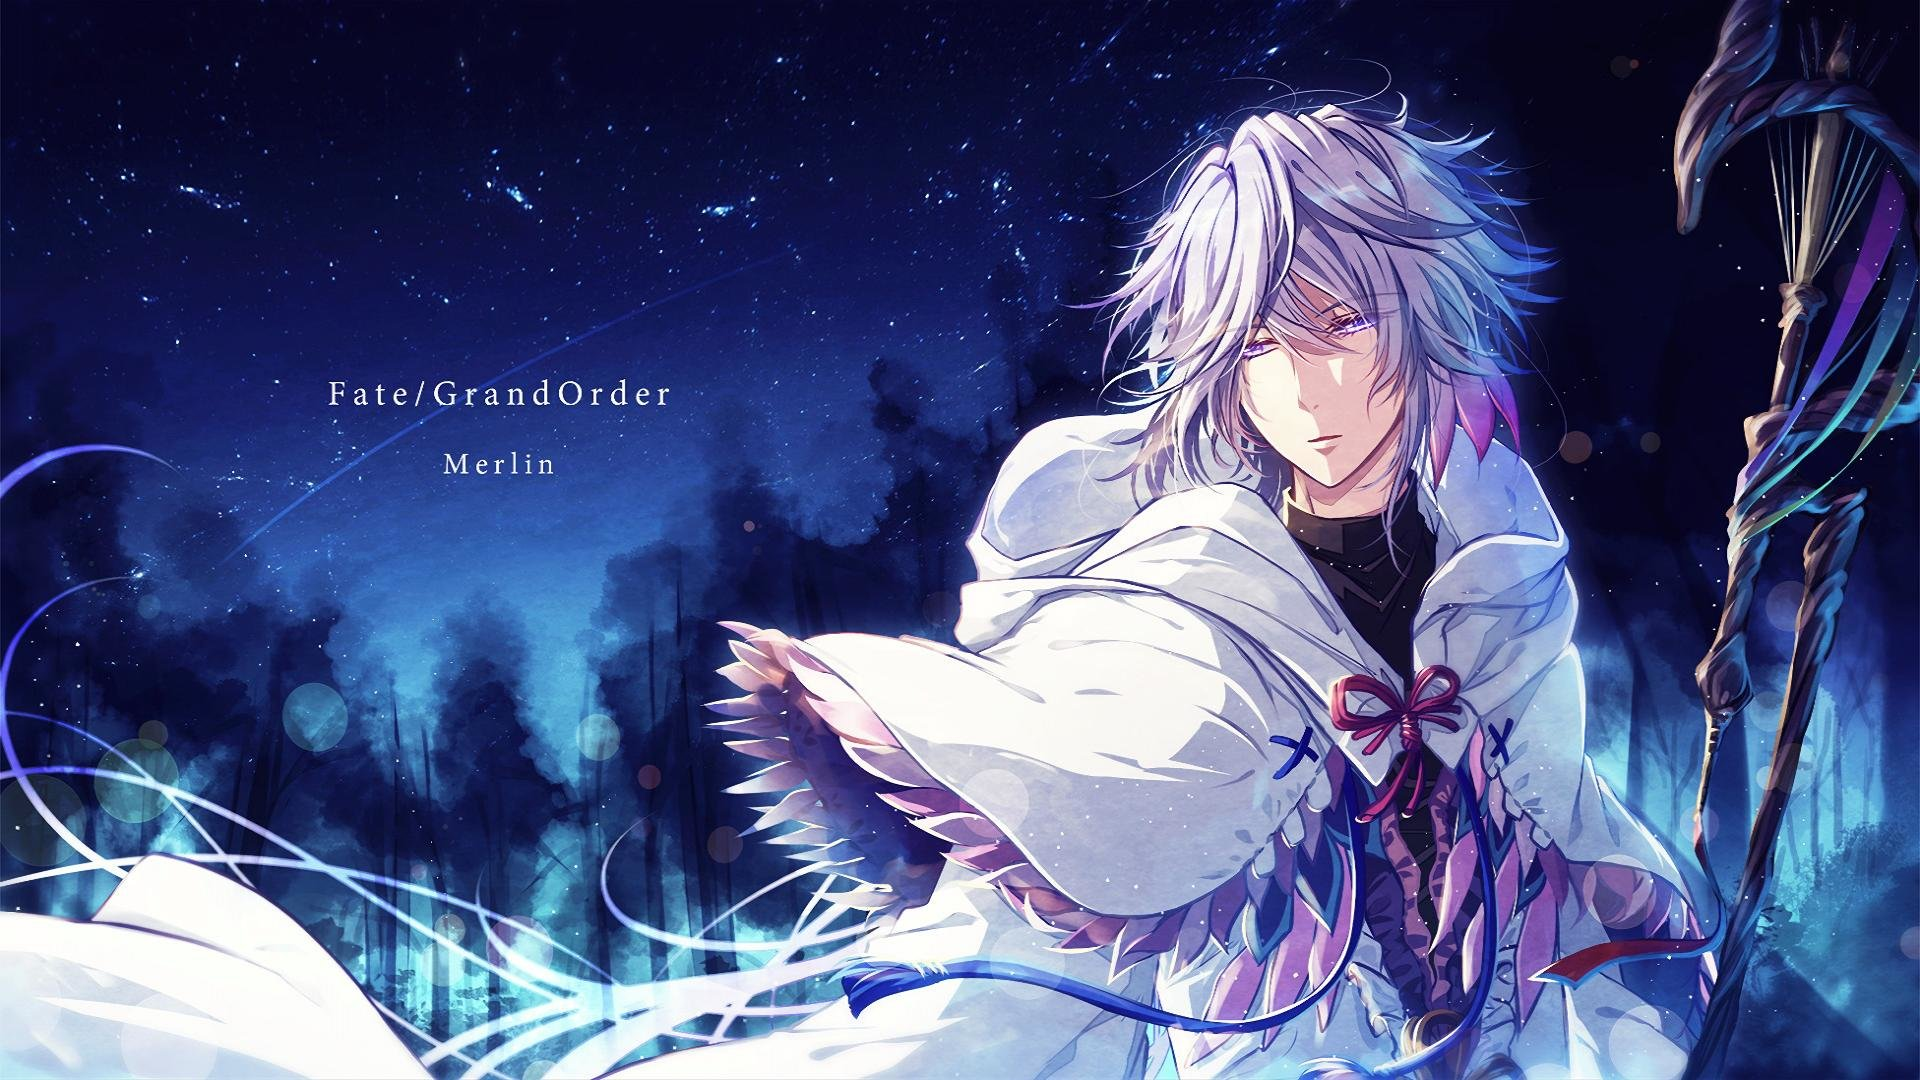 Awesome Fate Grand Order Free Wallpaper Id 330561 For Full Hd Desktop